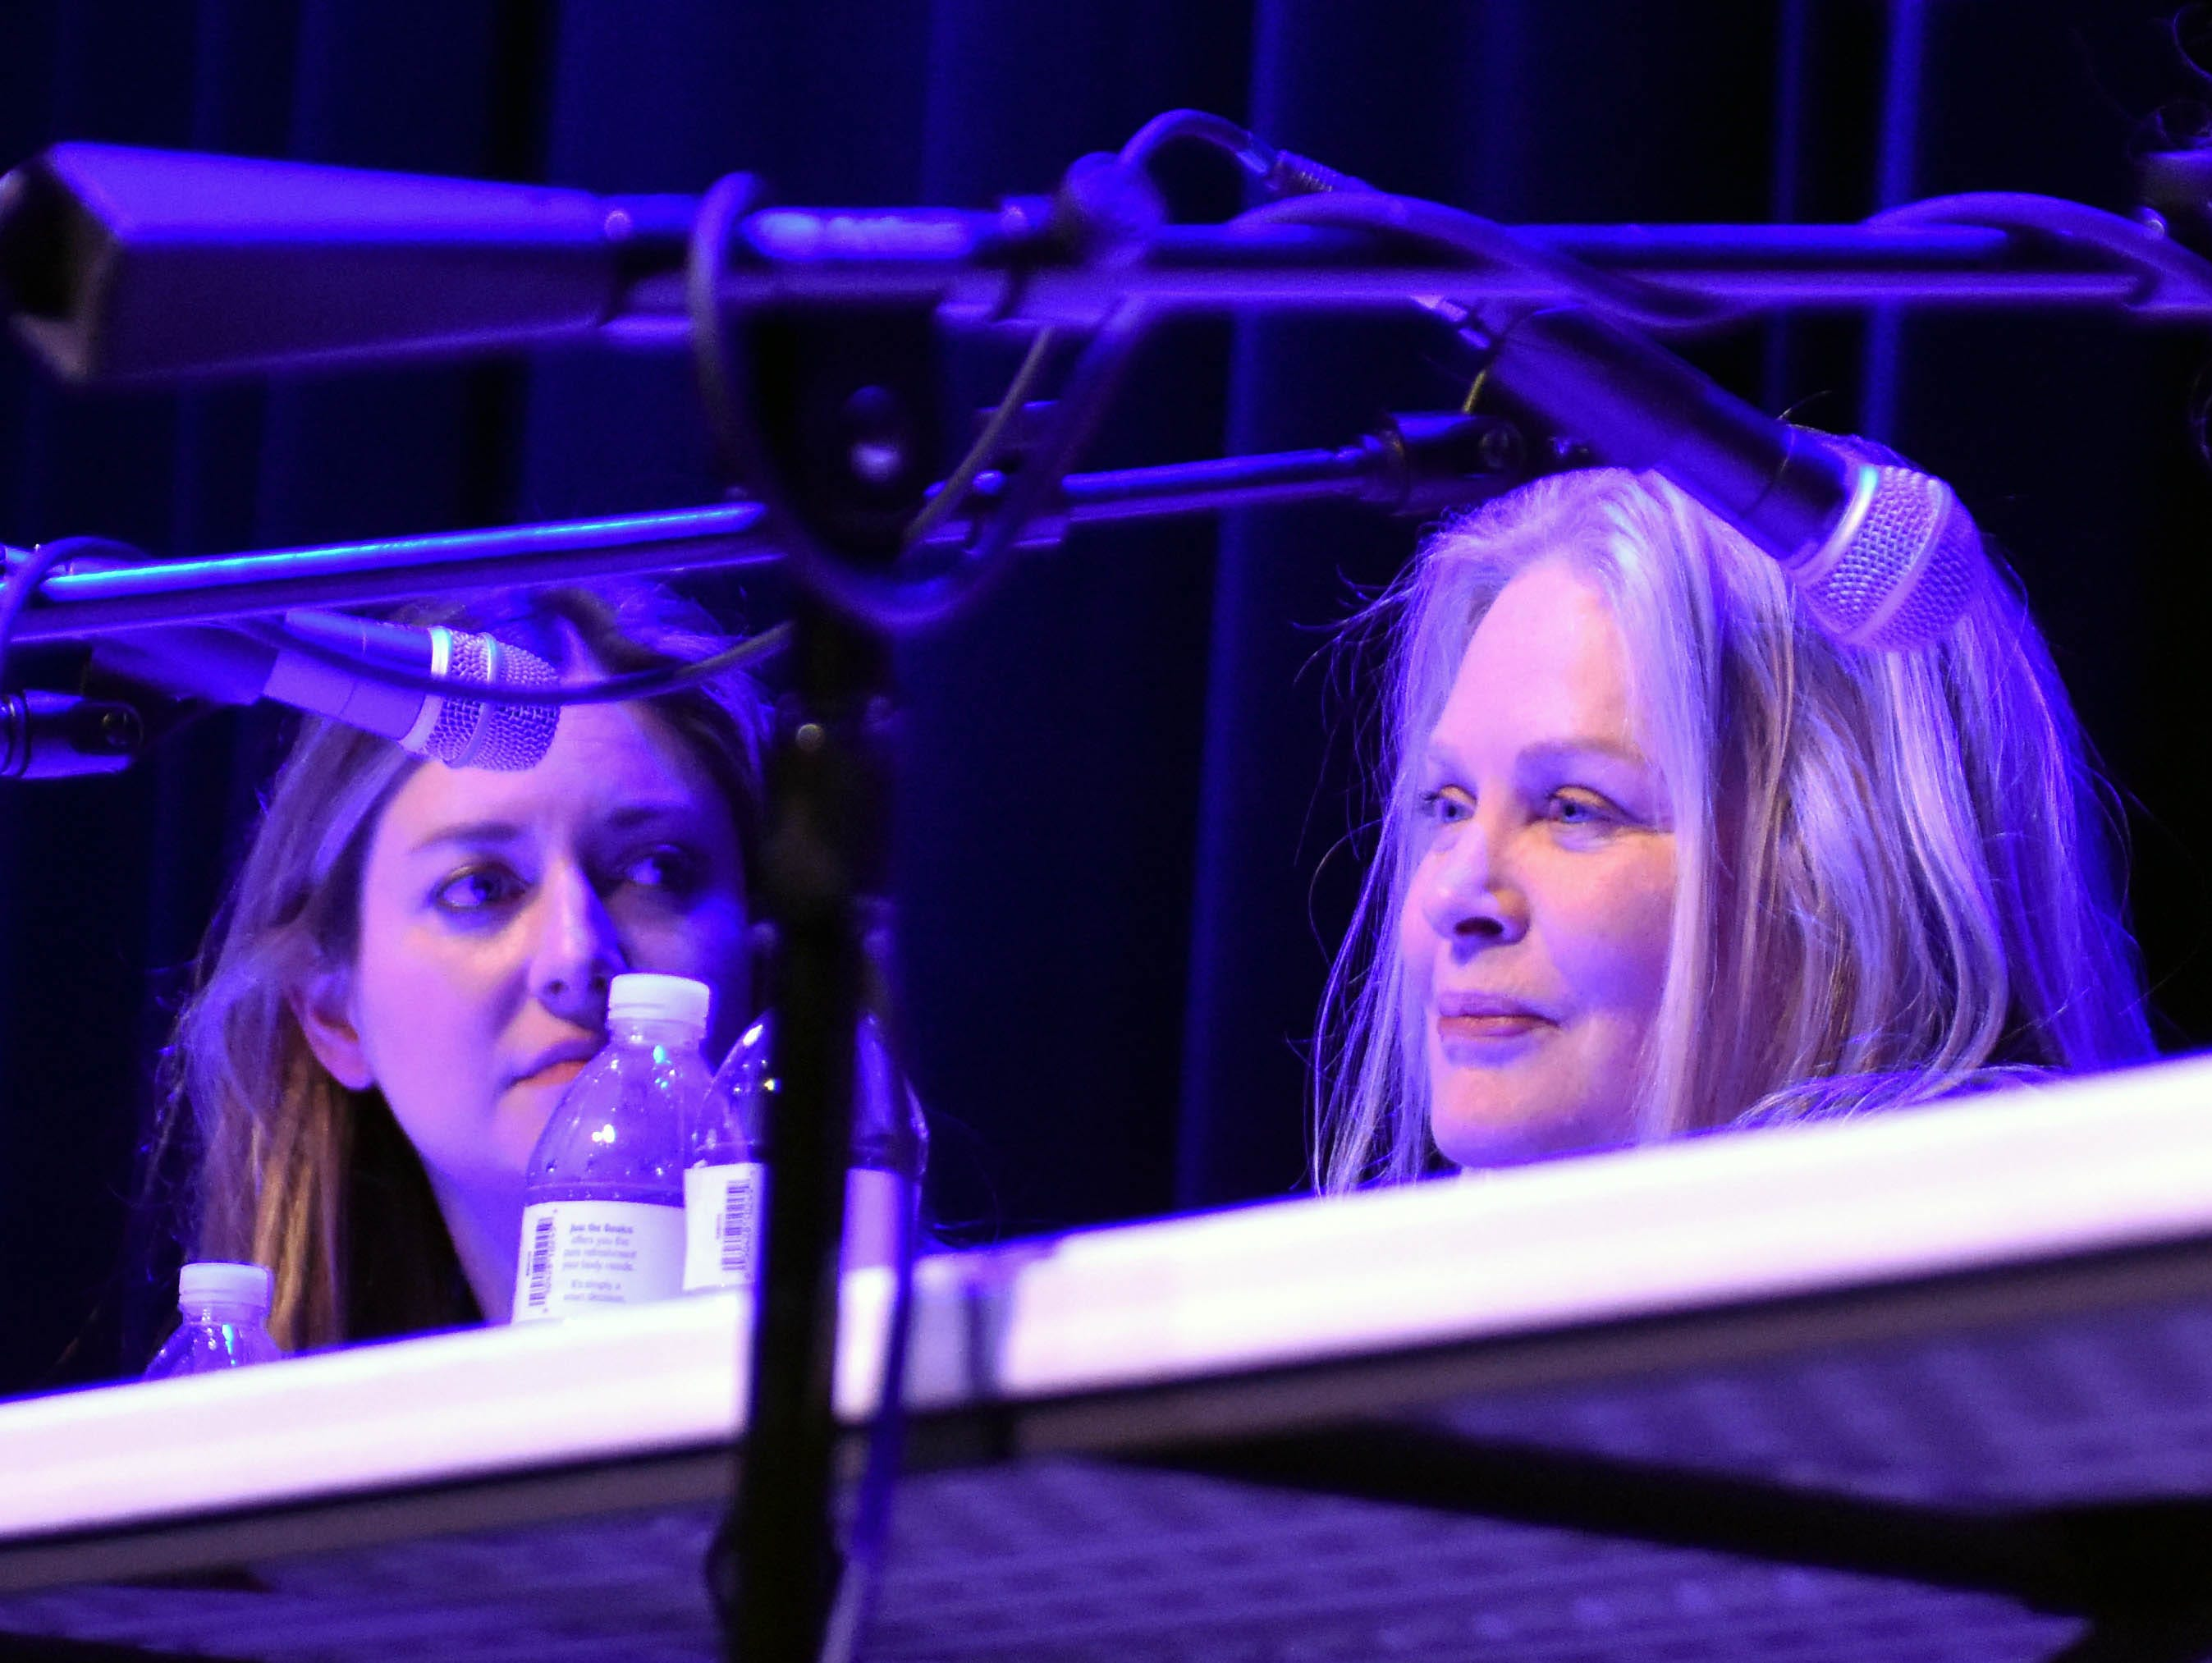 """From left, actresses Zoe Perry (""""Young Sheldon"""") and Beverly D'Angelo (""""National Lampoon's Vacation"""" movies) participate in the """"Making It Work in Hollywood"""" panel Saturday, Feb. 23, 2019, at the Rio Grande Theatre, part of the Las Cruces International Film Festival."""